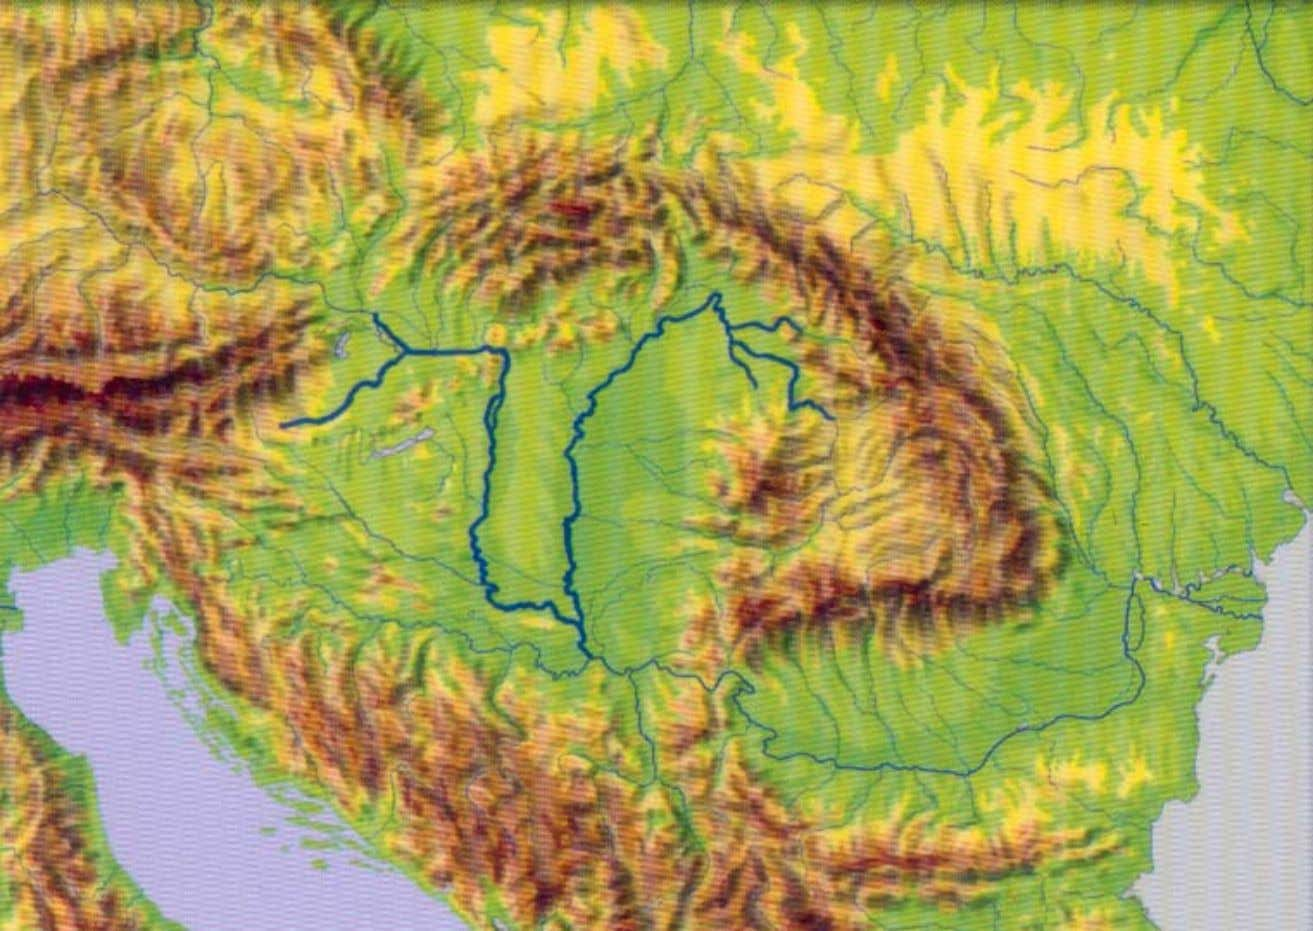 Topography of Carpathian-Basin